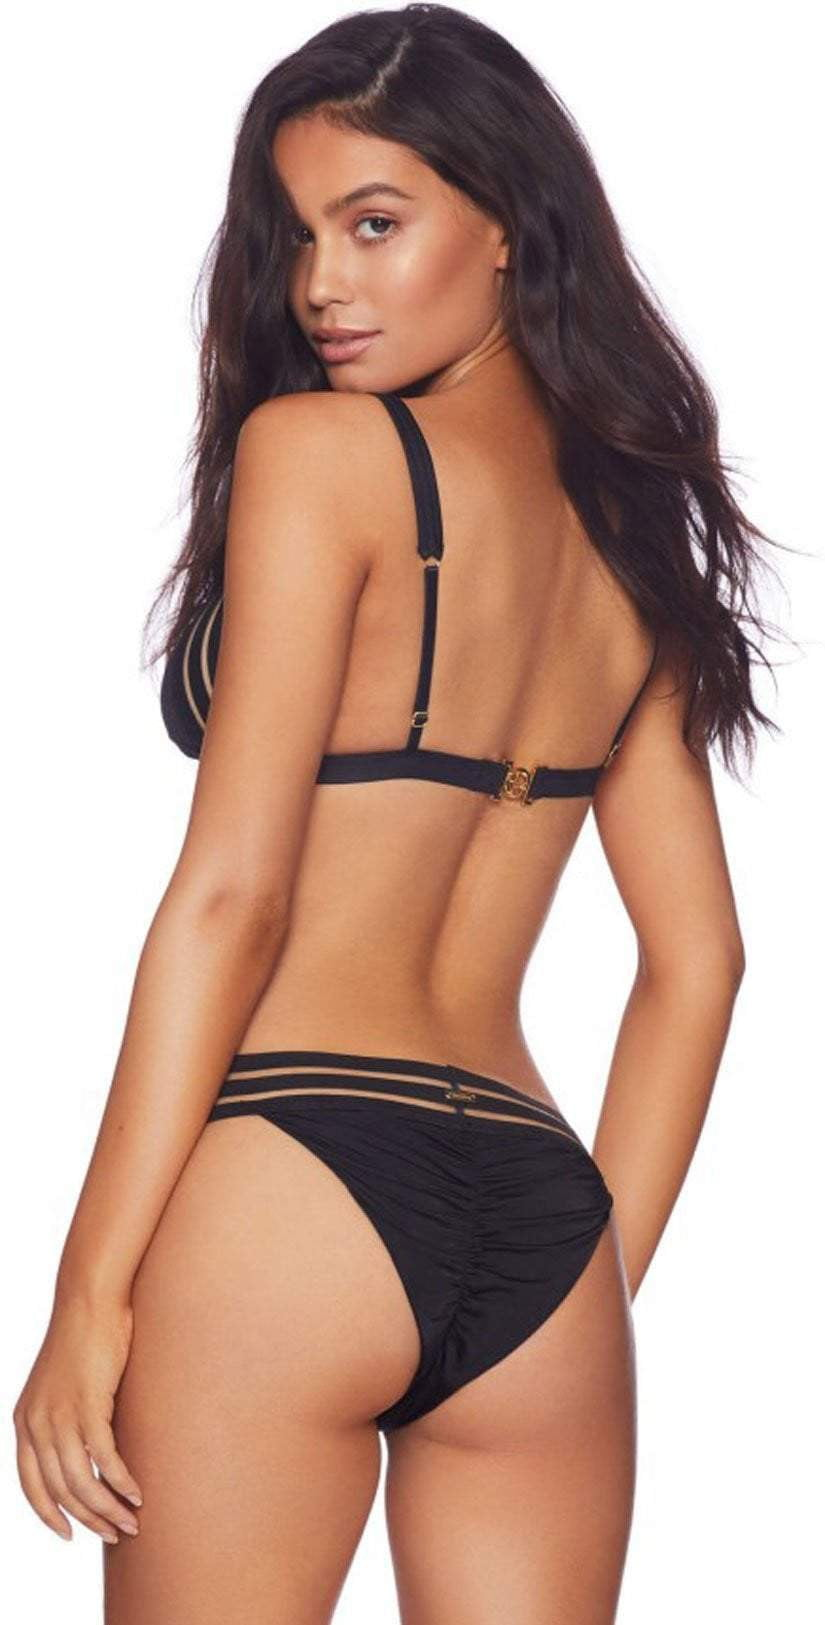 Beach Bunny Sheer Addiction Triangle Top In Black B16125T1-BLCK: